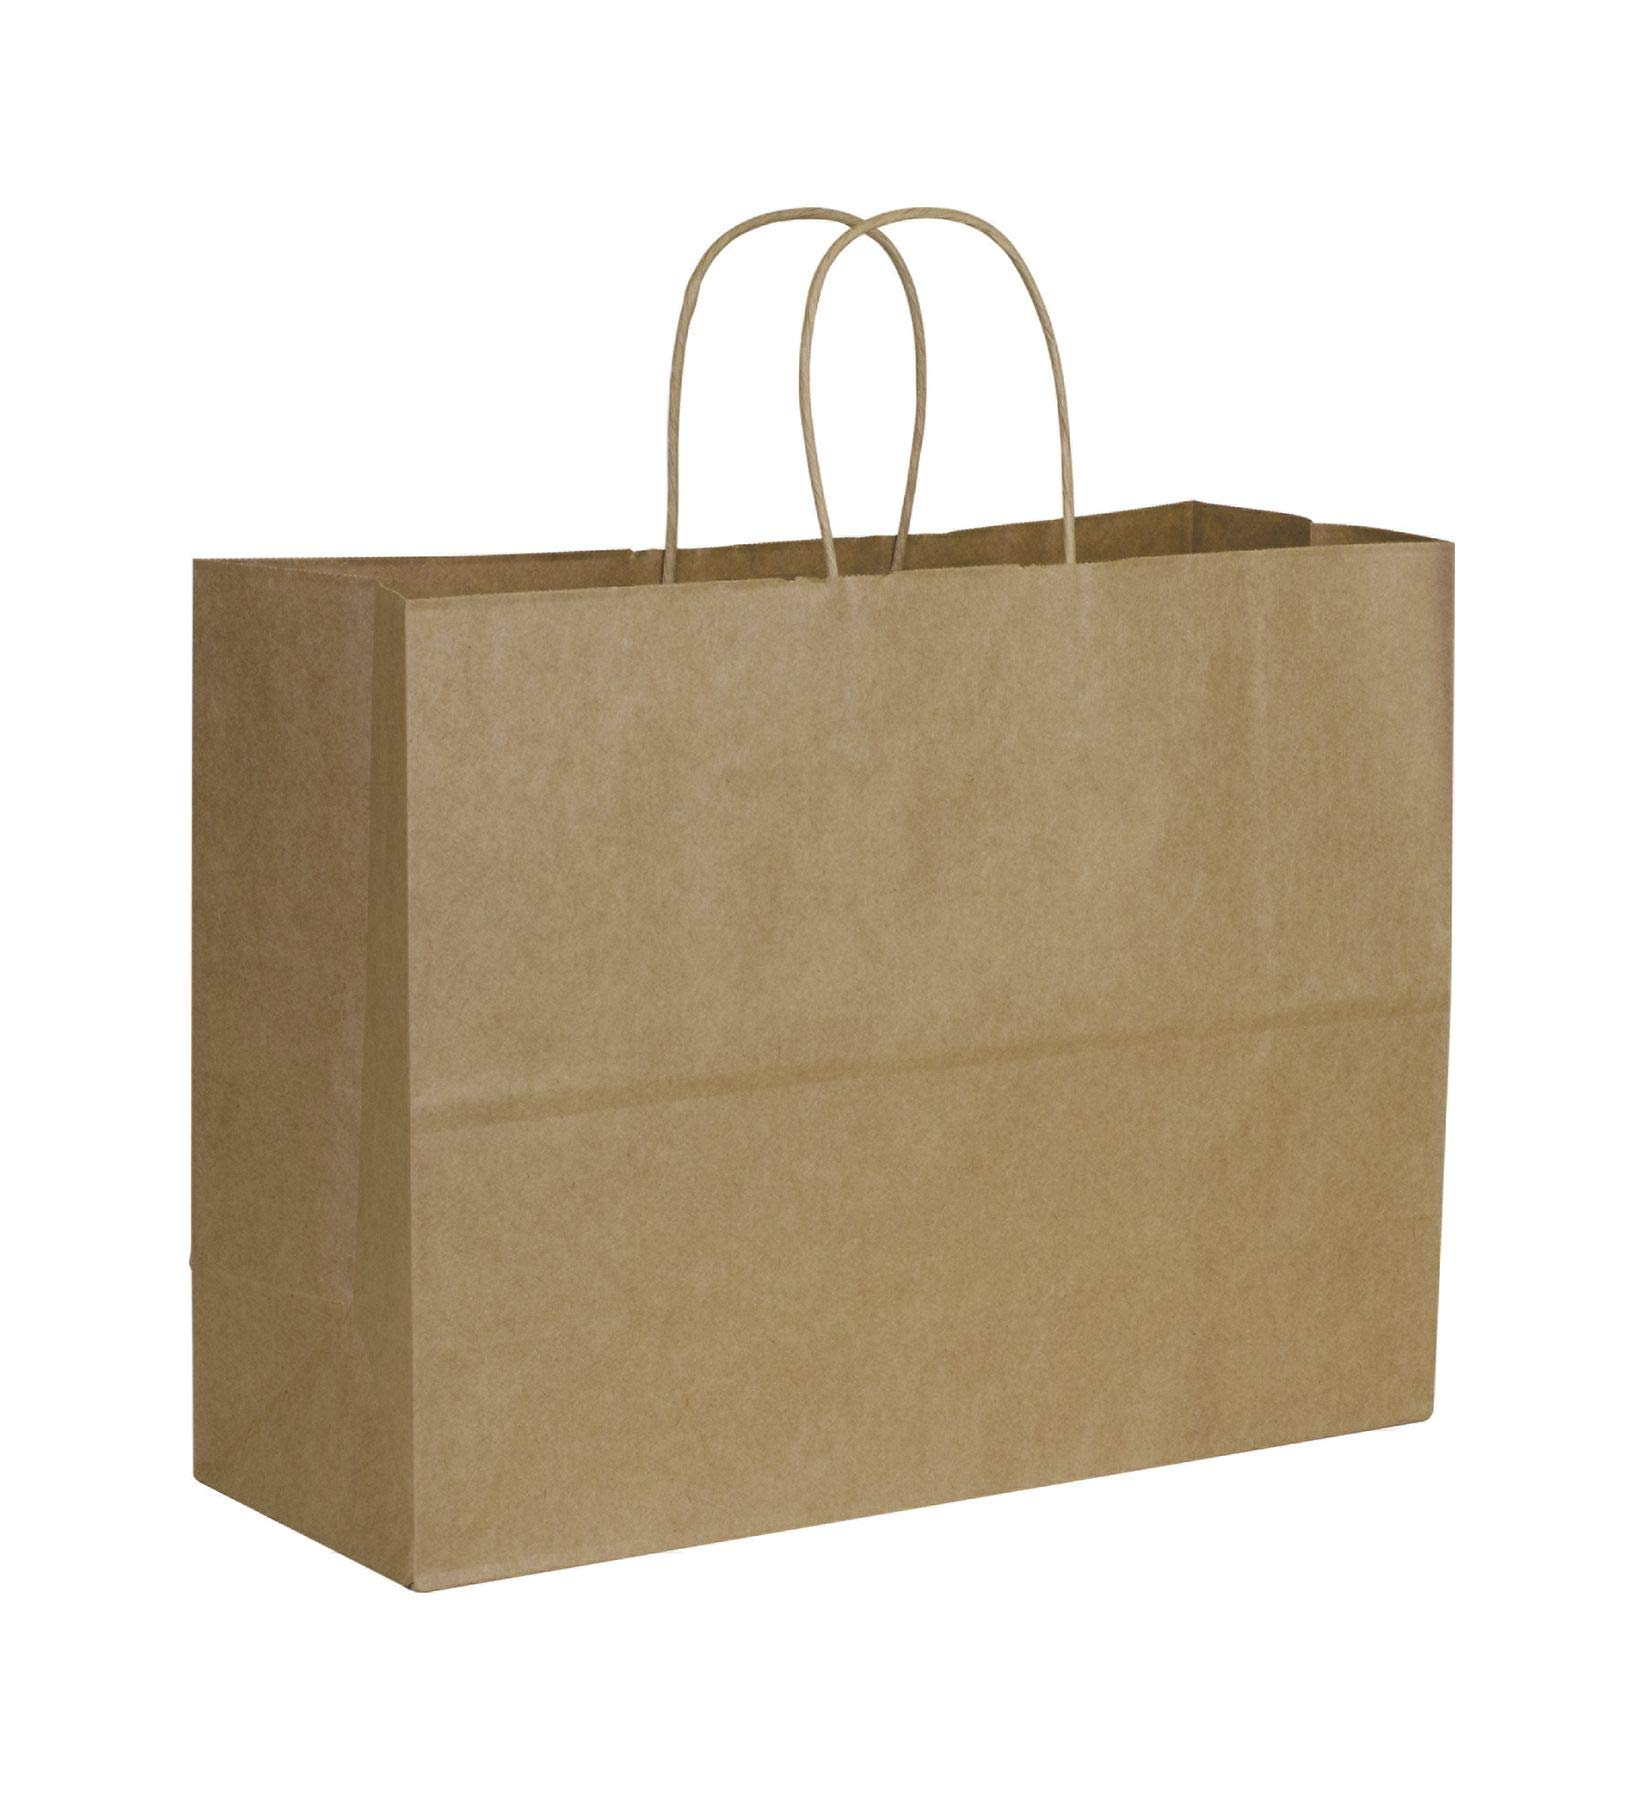 Solid Color Pattern Shopping Bags - Kraft Paper Shoppers Vogue, 16 x 6 x 12 1/2'' (250 Bags) - BOWS-29-8